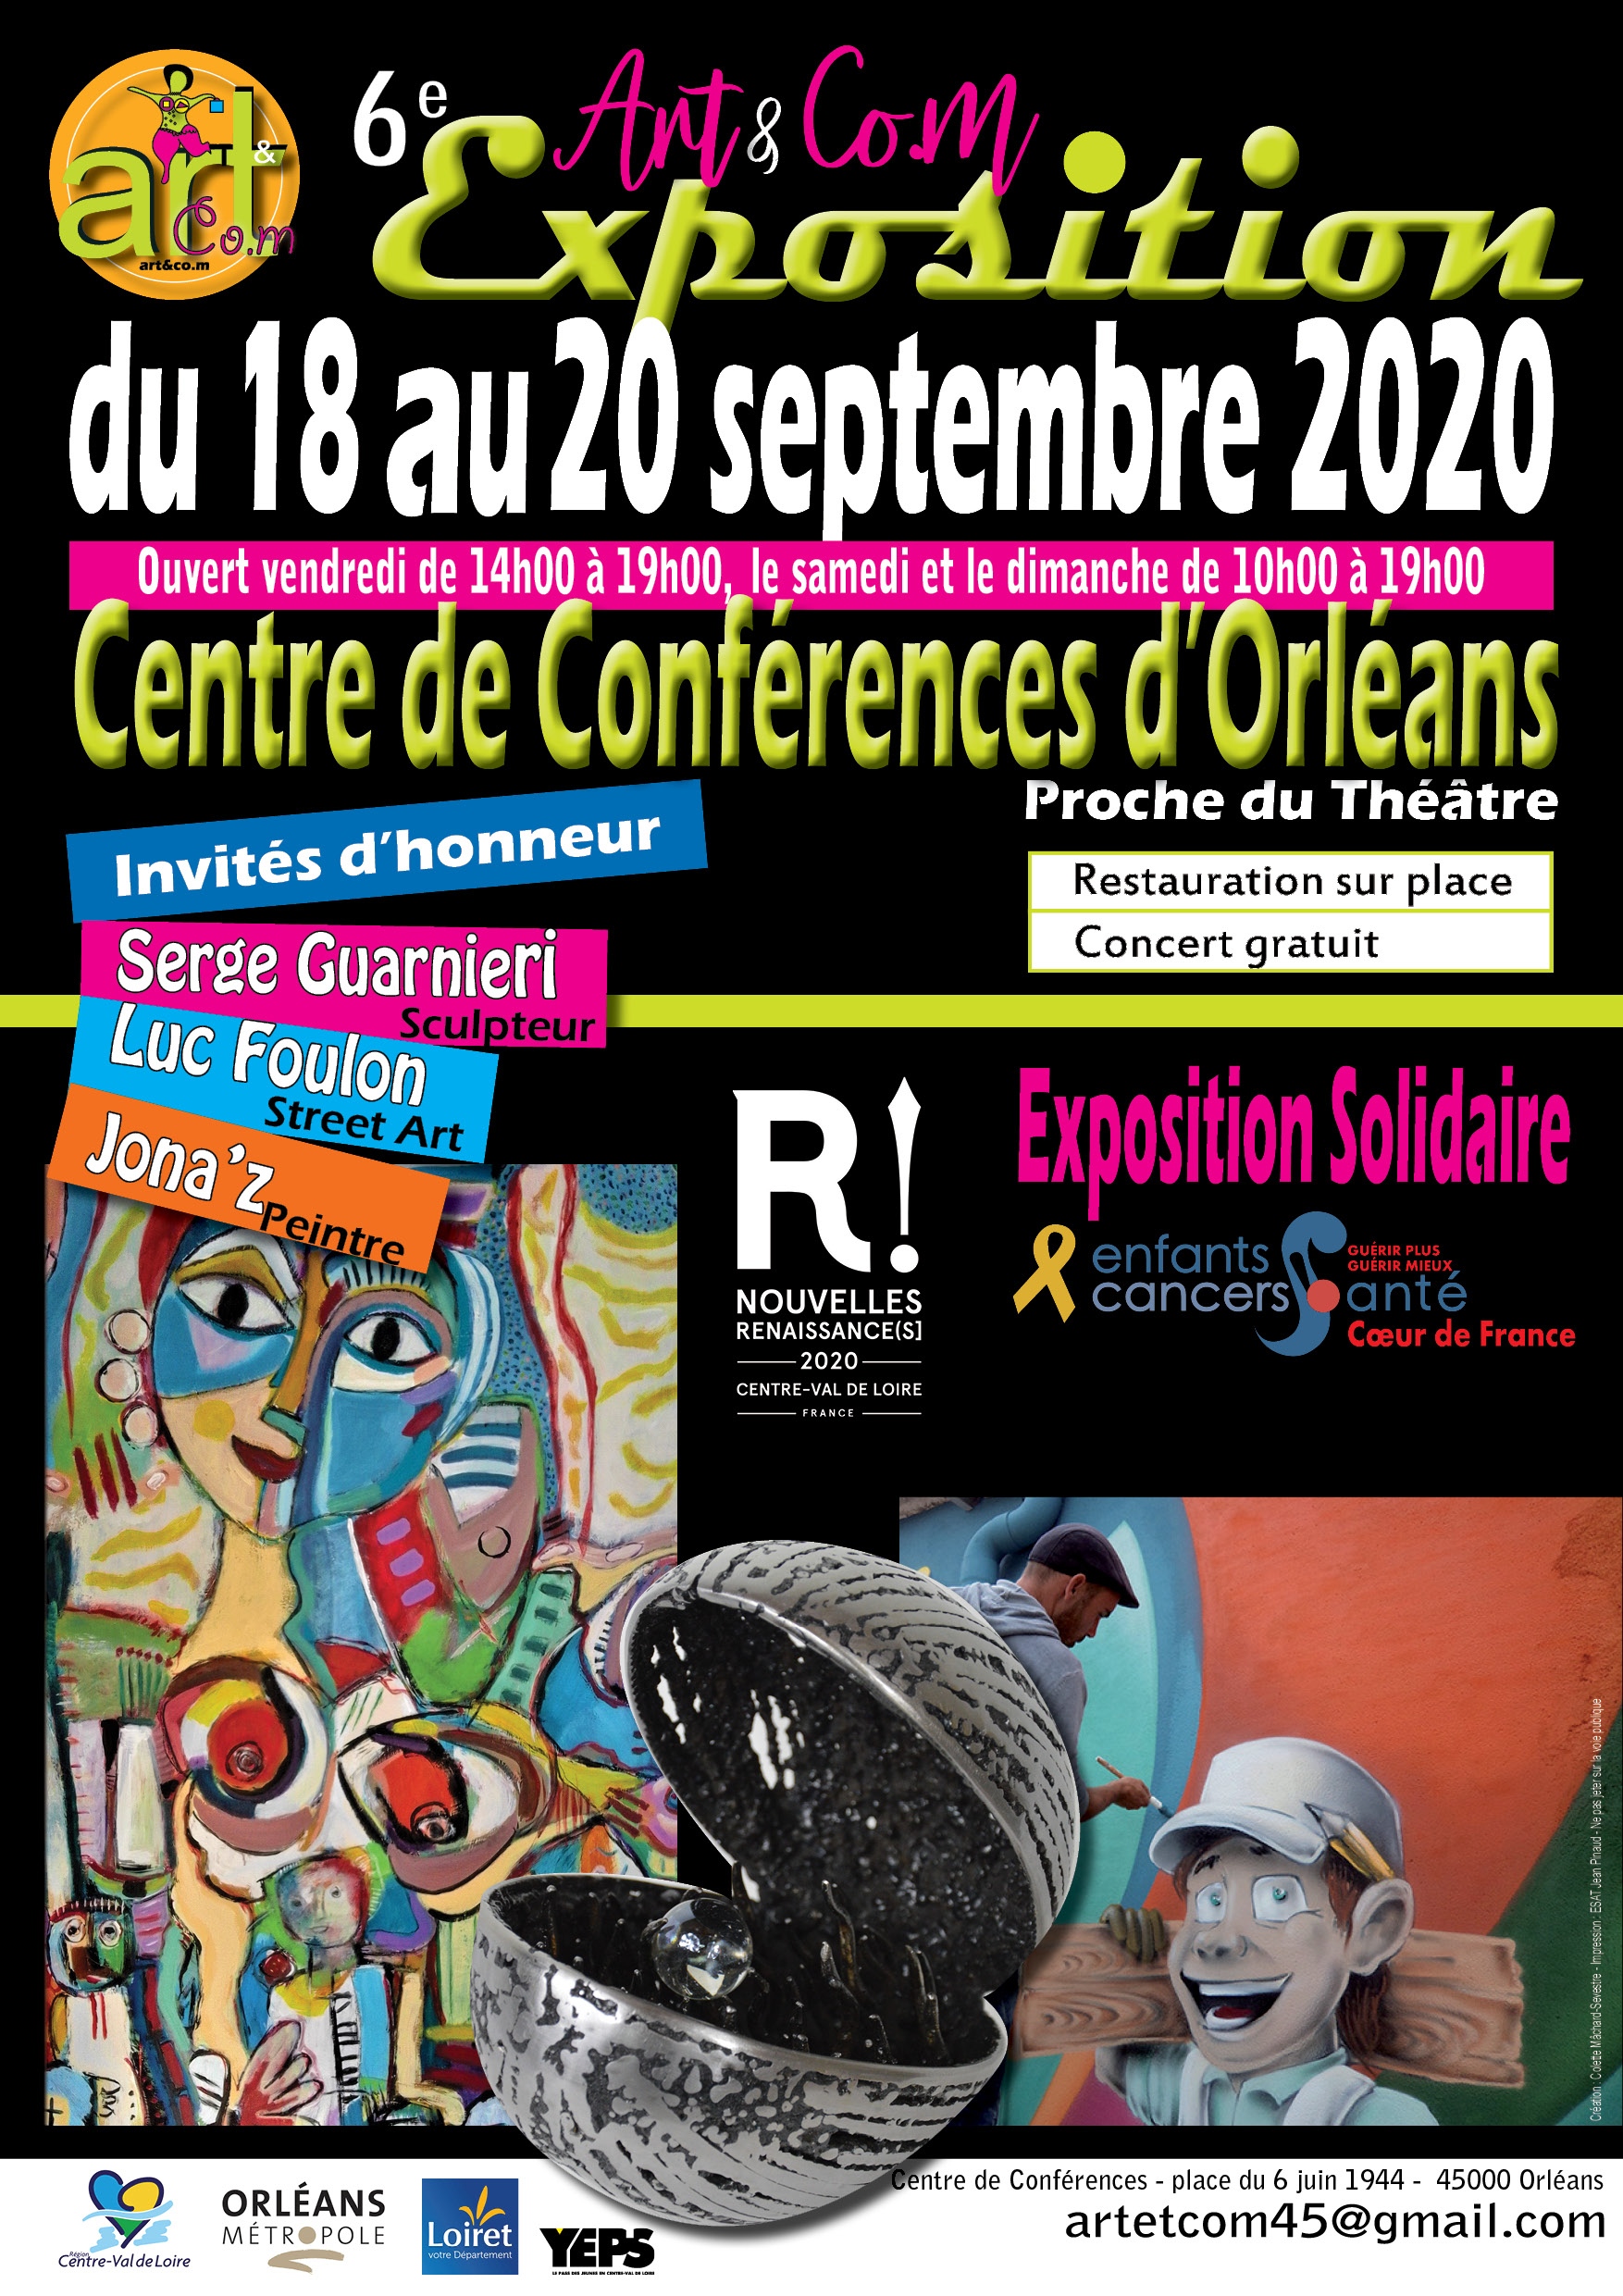 EXPOSITION SOLIDAIRE ART & COM